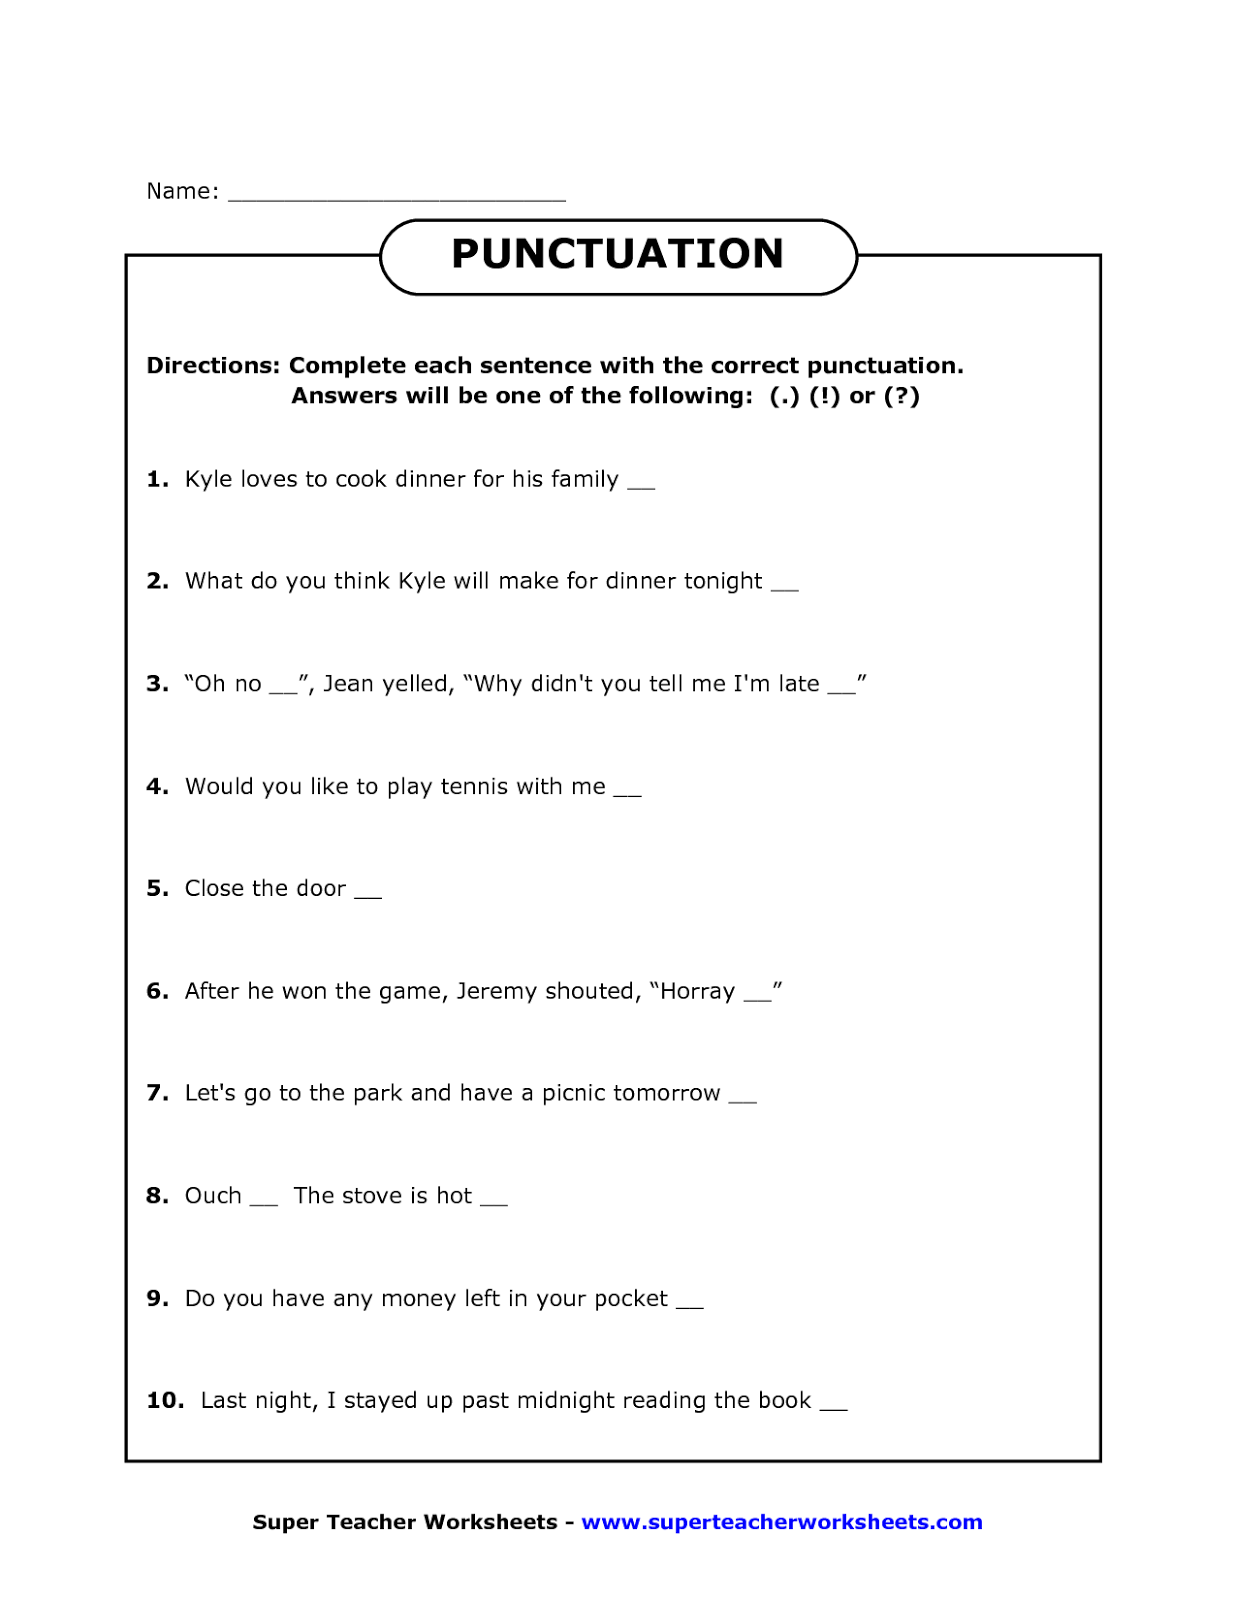 hight resolution of Punctuation Worksheets For 10th Grade   Printable Worksheets and Activities  for Teachers